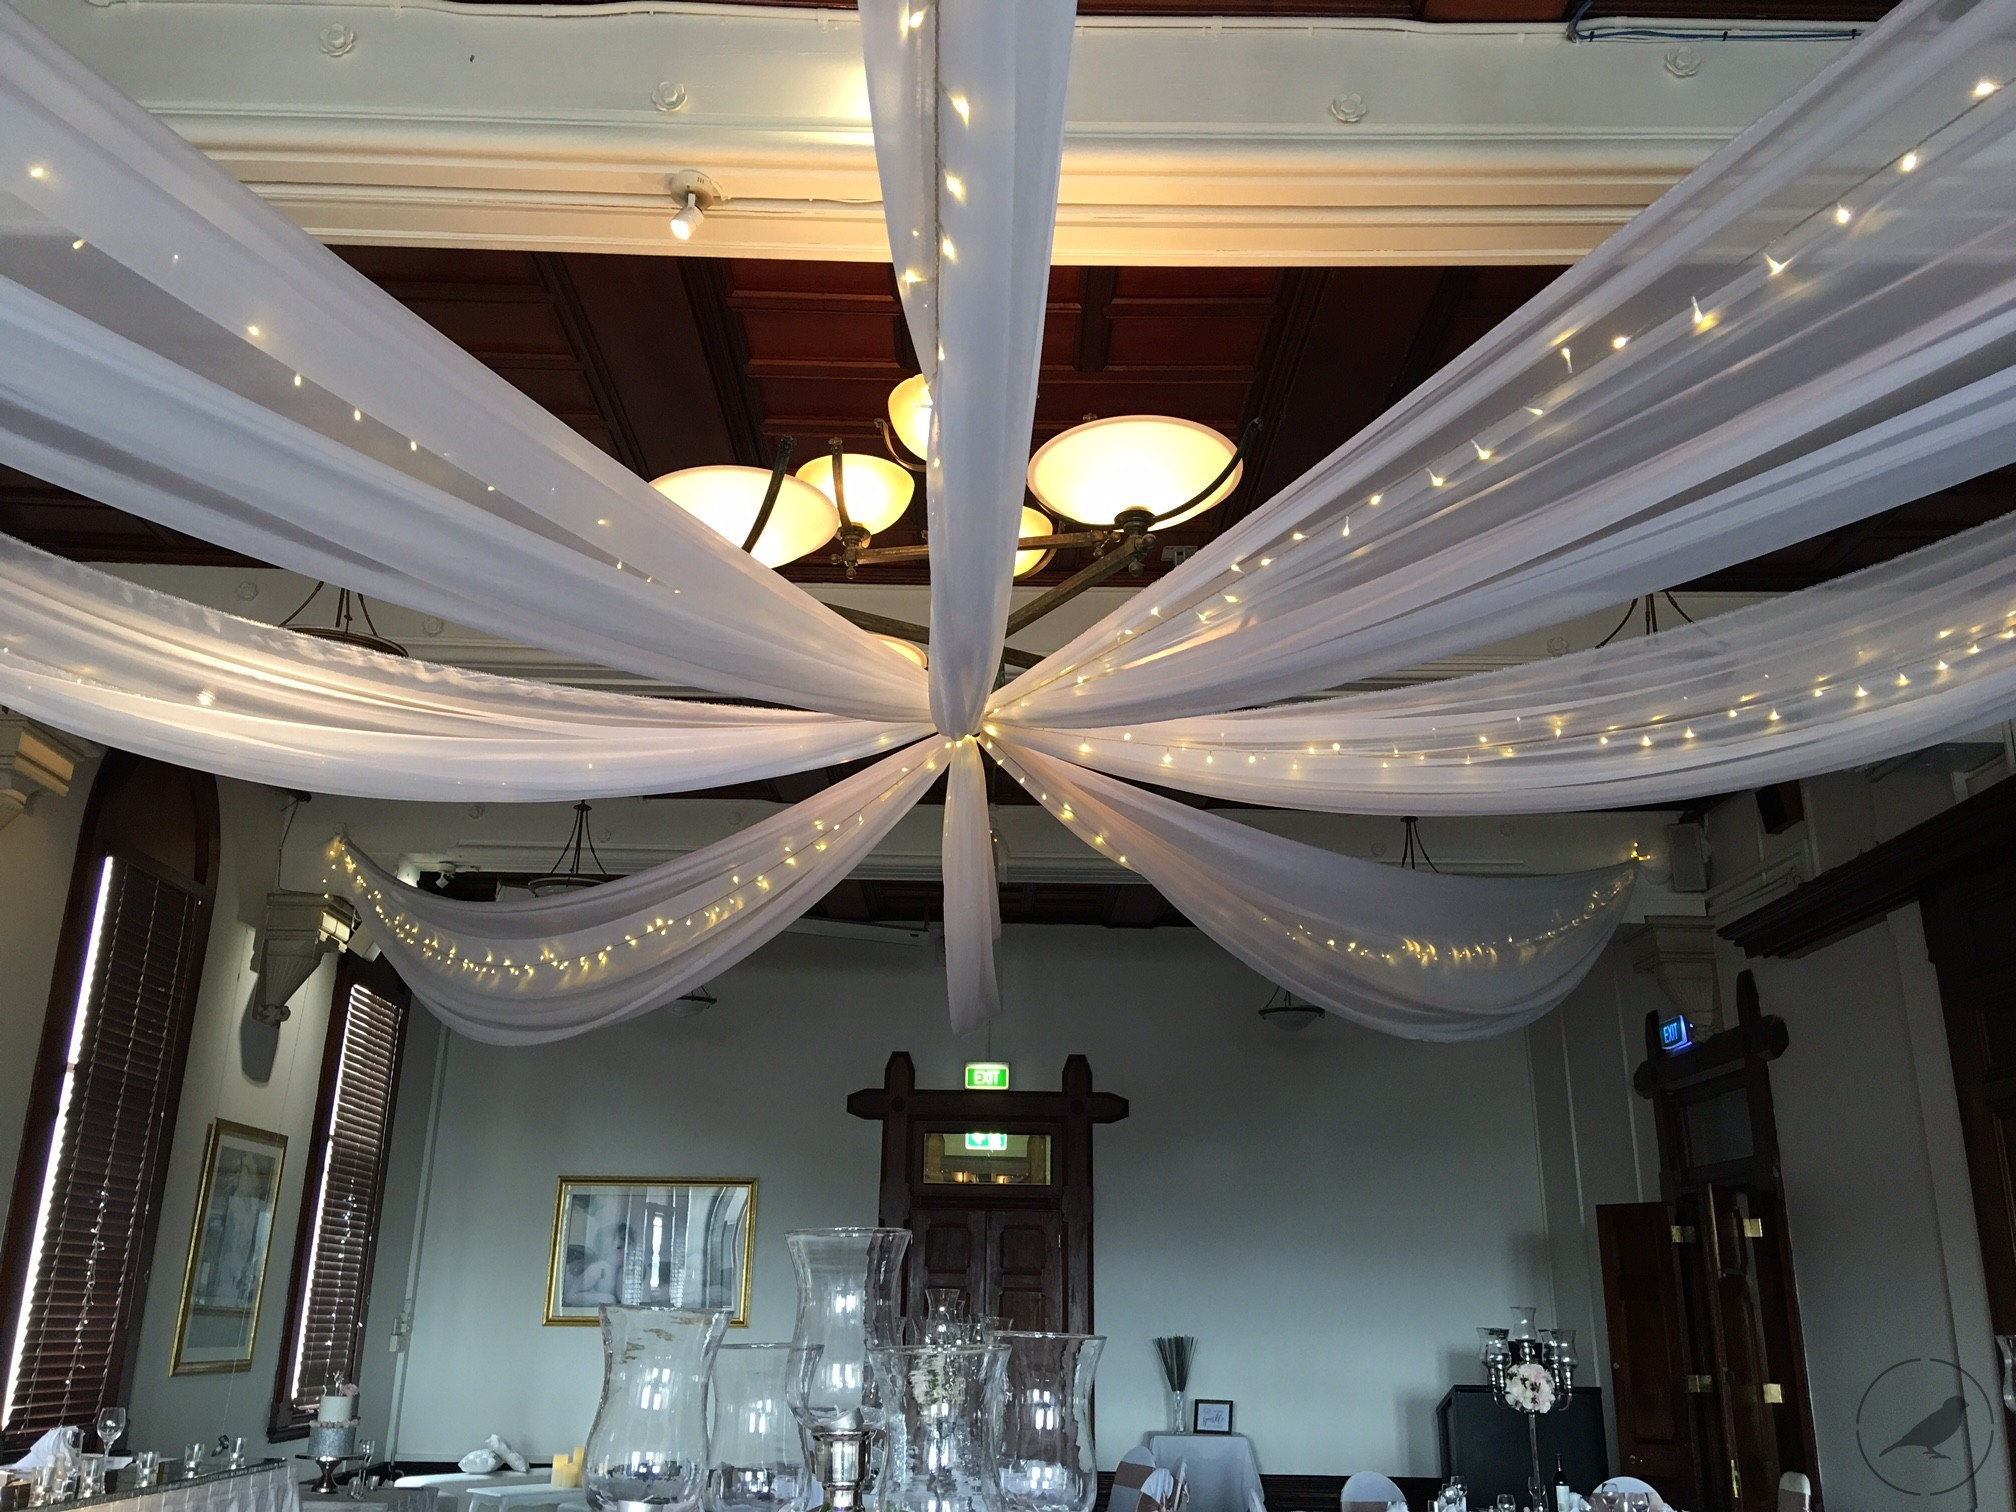 Ceiling Draping and fairy lights Ceiling Draping